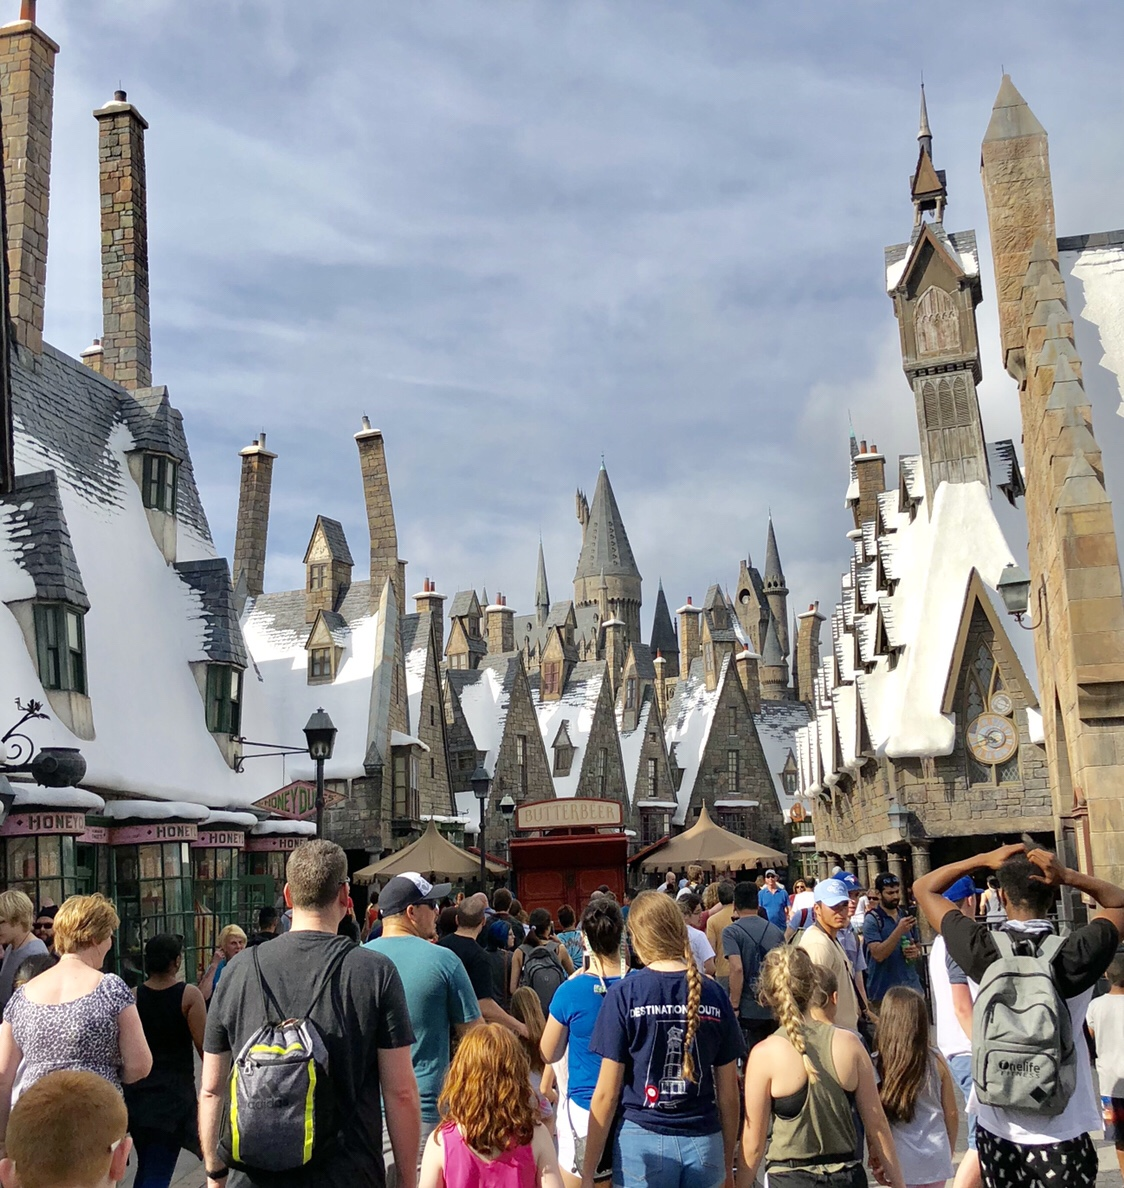 Hogsmeade | Wizarding World of Harry Potter #hogsmeade #wizardingworldofharrypotter #harrypotter #hogwarts #islandsofadventure